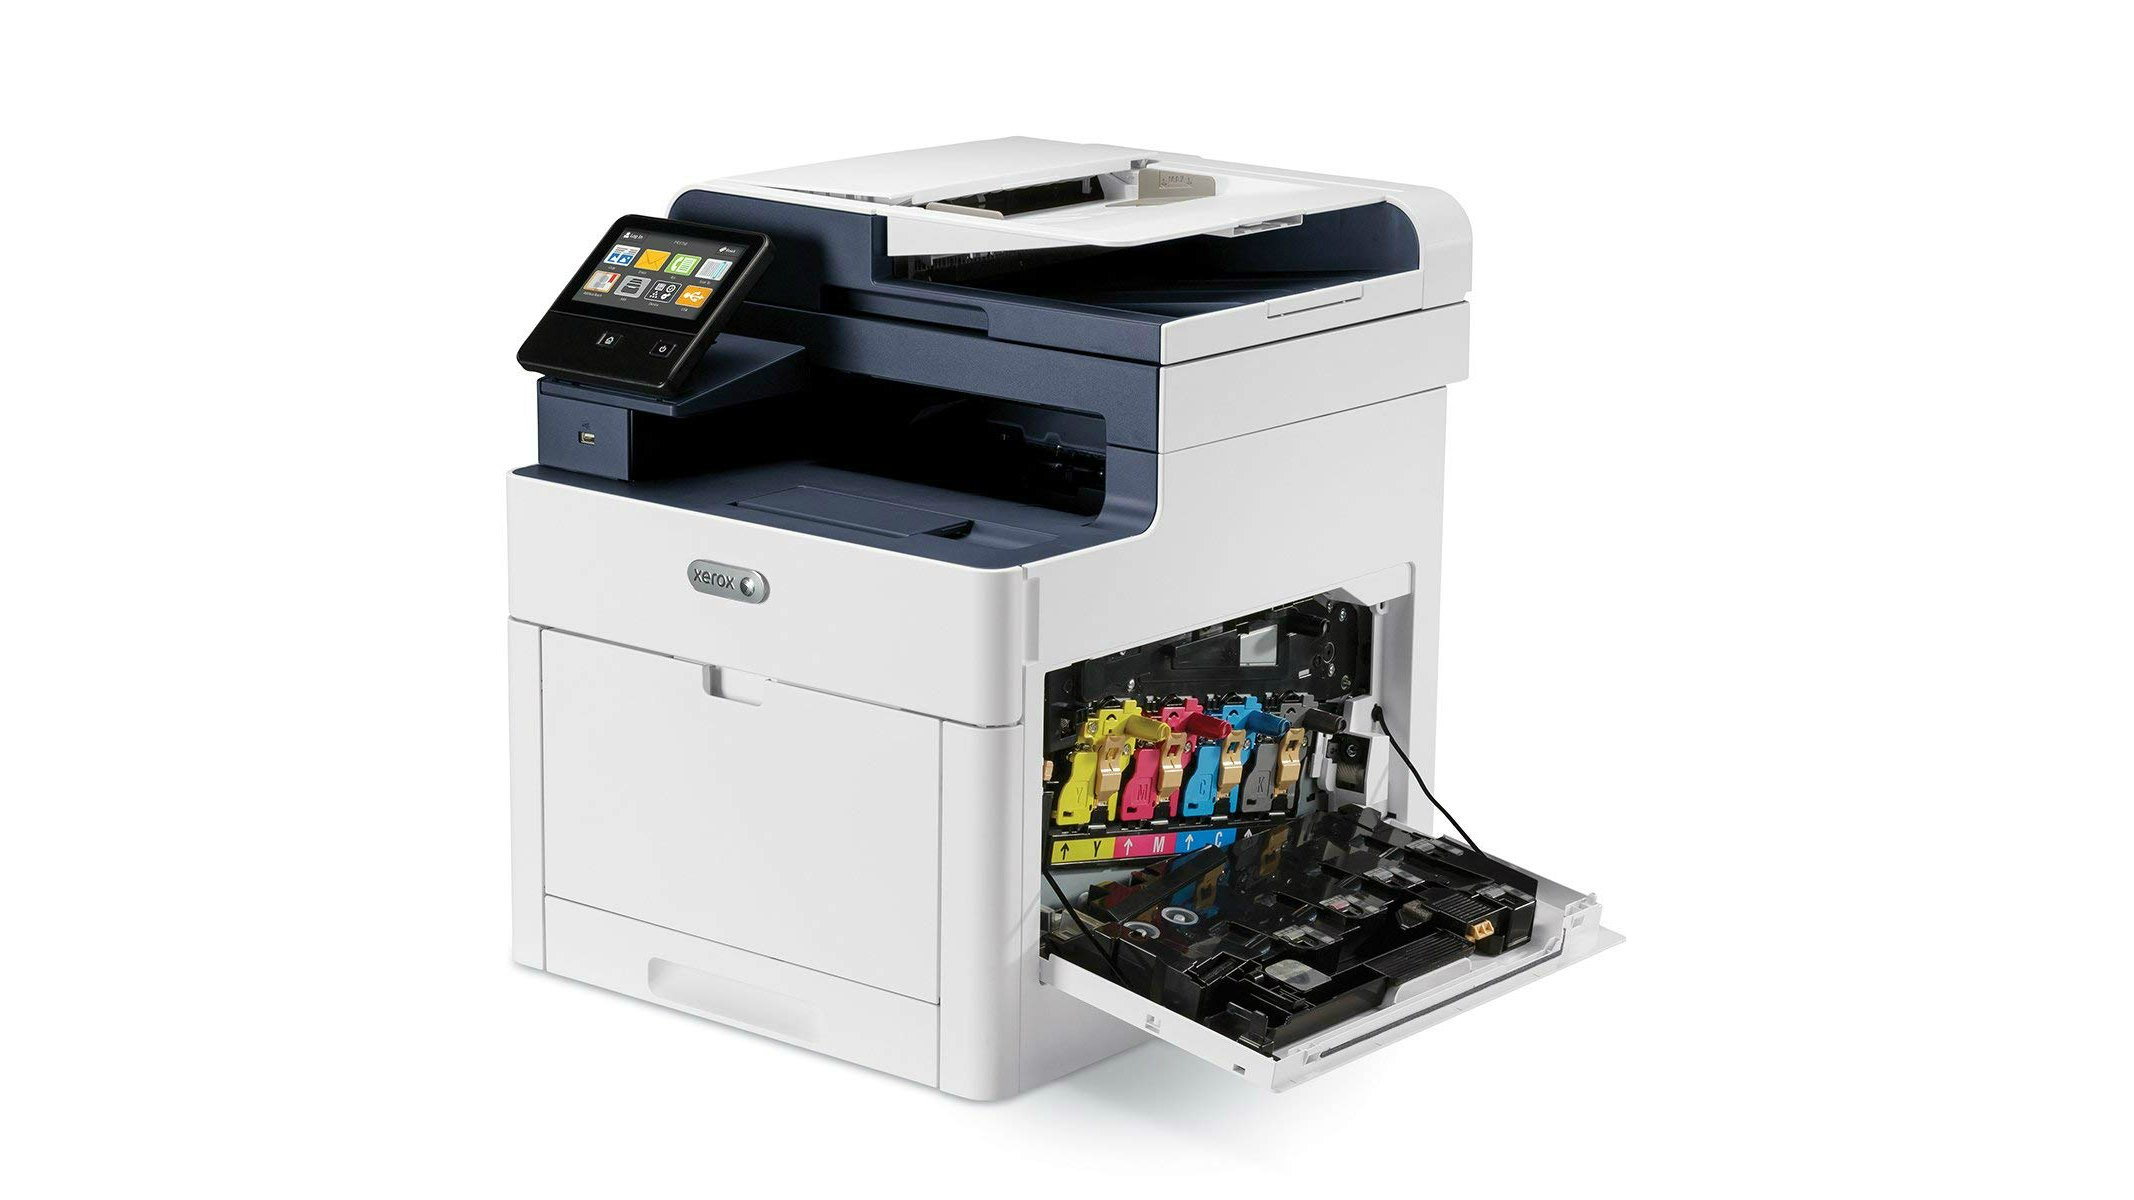 Xerox WorkCentre 6515DNI review: A great device for a small